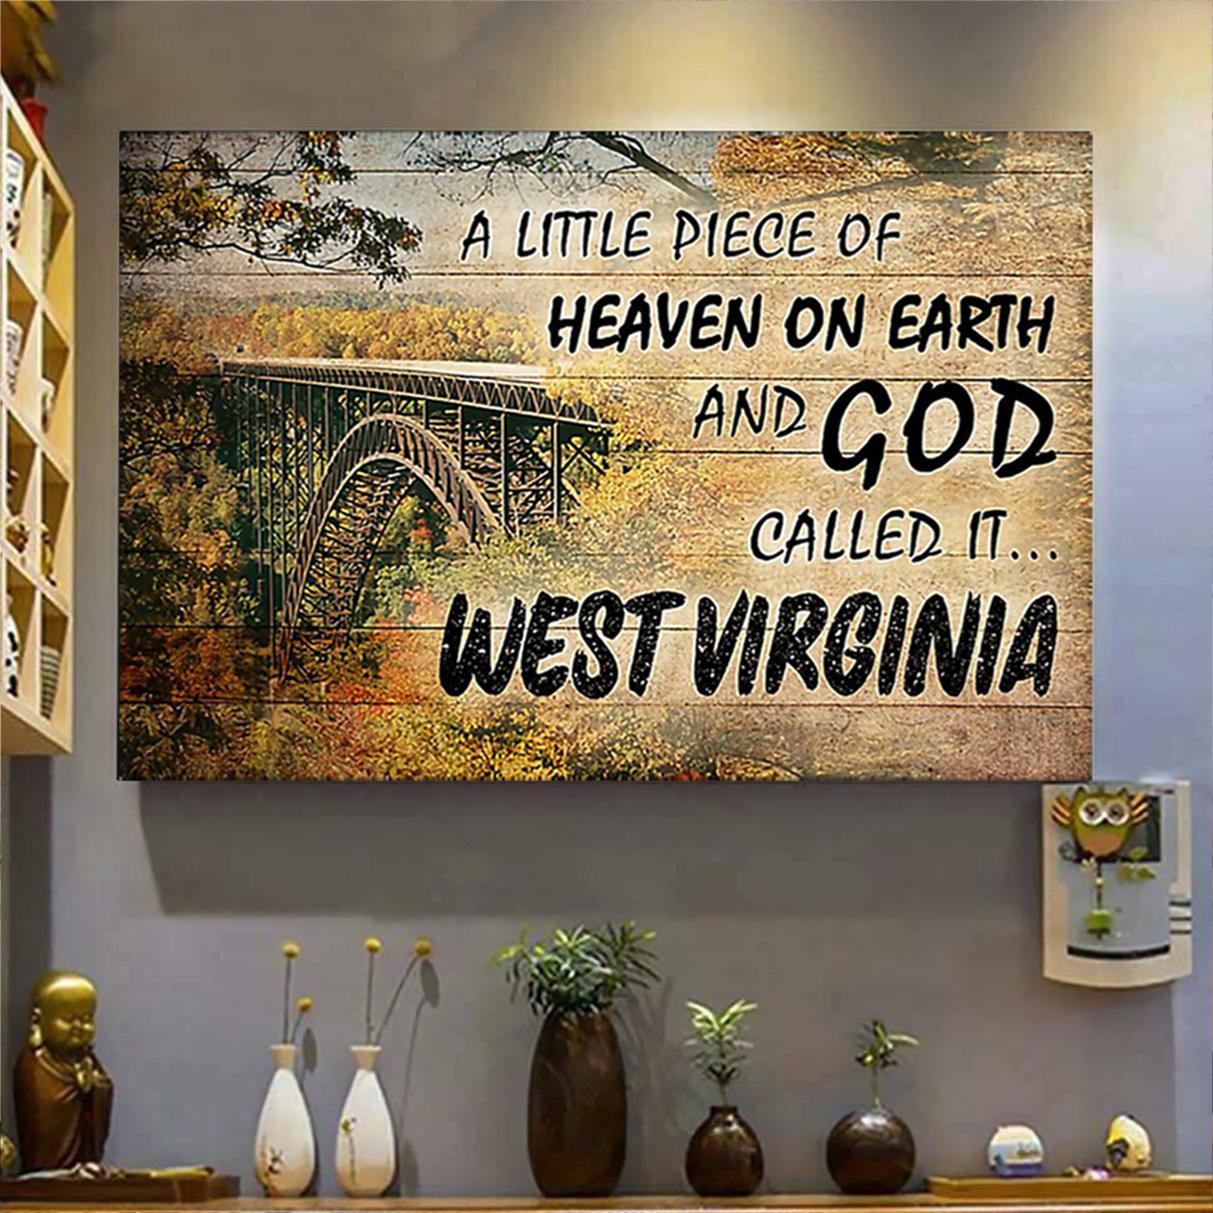 A little piece of heaven on earth and god called it west virginia poster A1